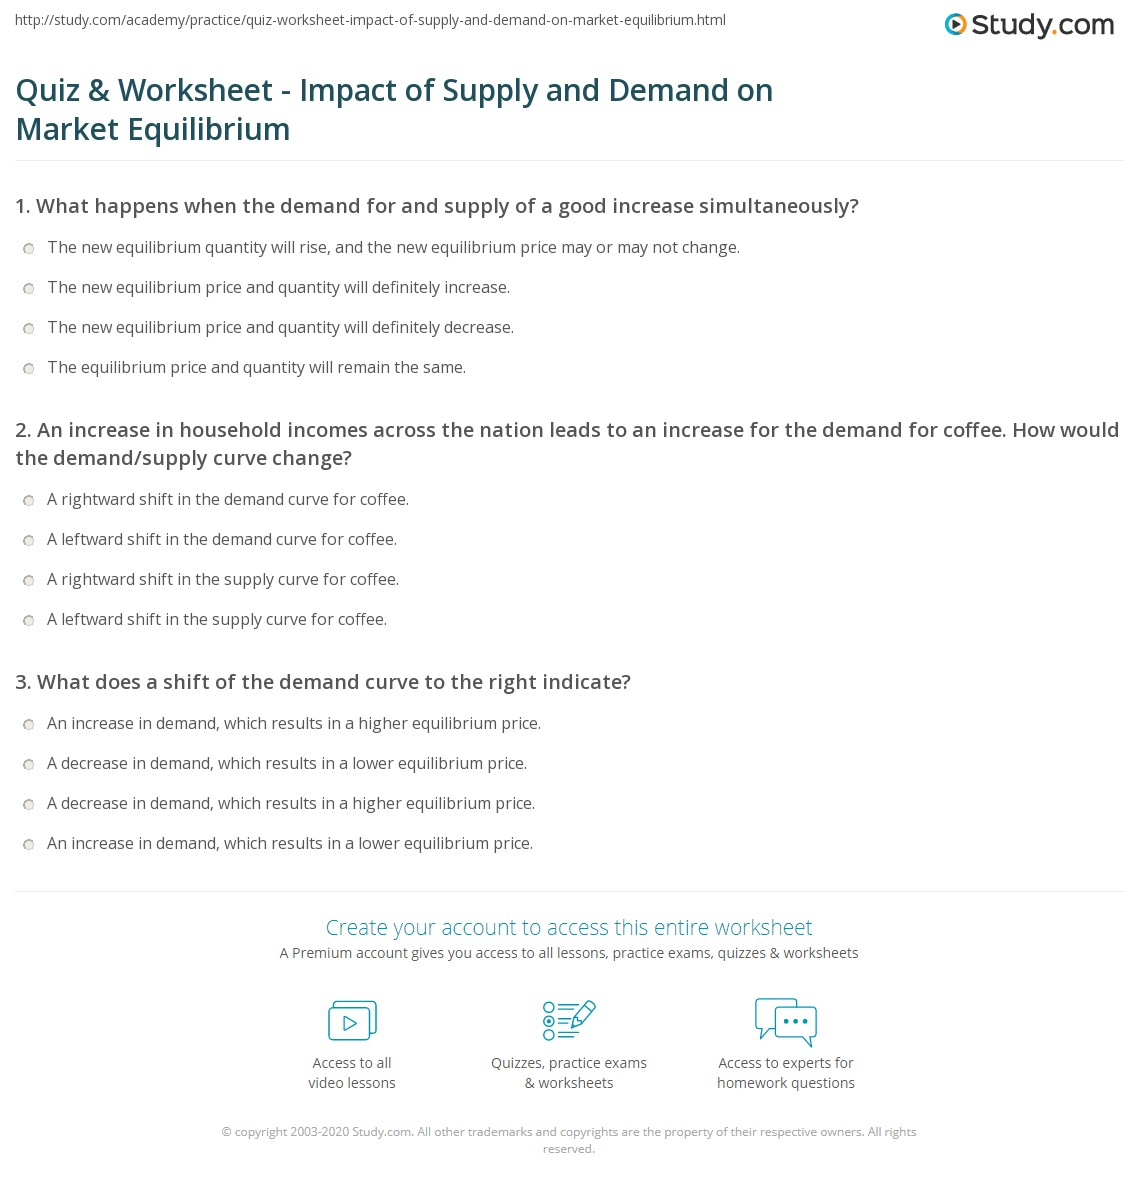 Worksheets Supply And Demand Worksheet quiz worksheet impact of supply and demand on market equilibrium print how changes in affect worksheet